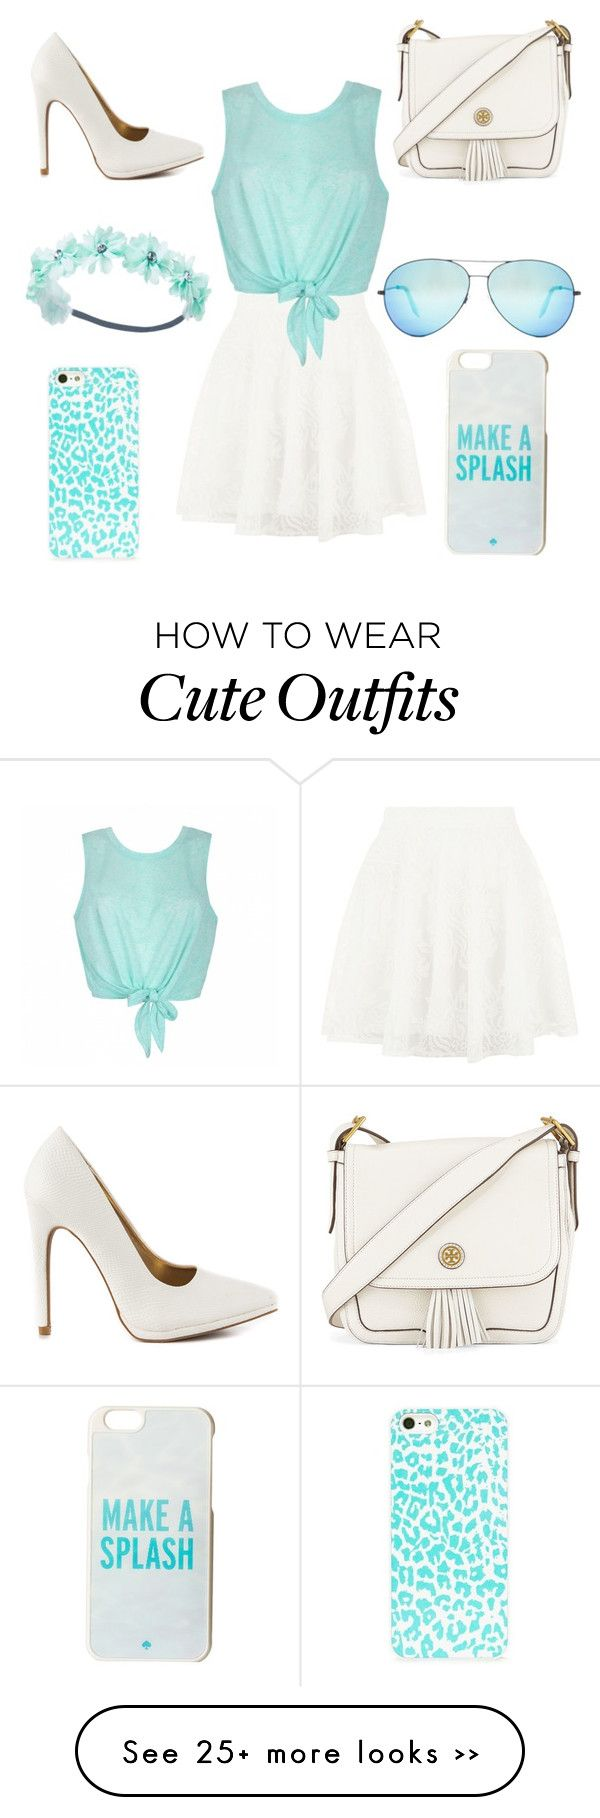 """Cute girly casual outfit"" by brighid-lamp on Polyvore"